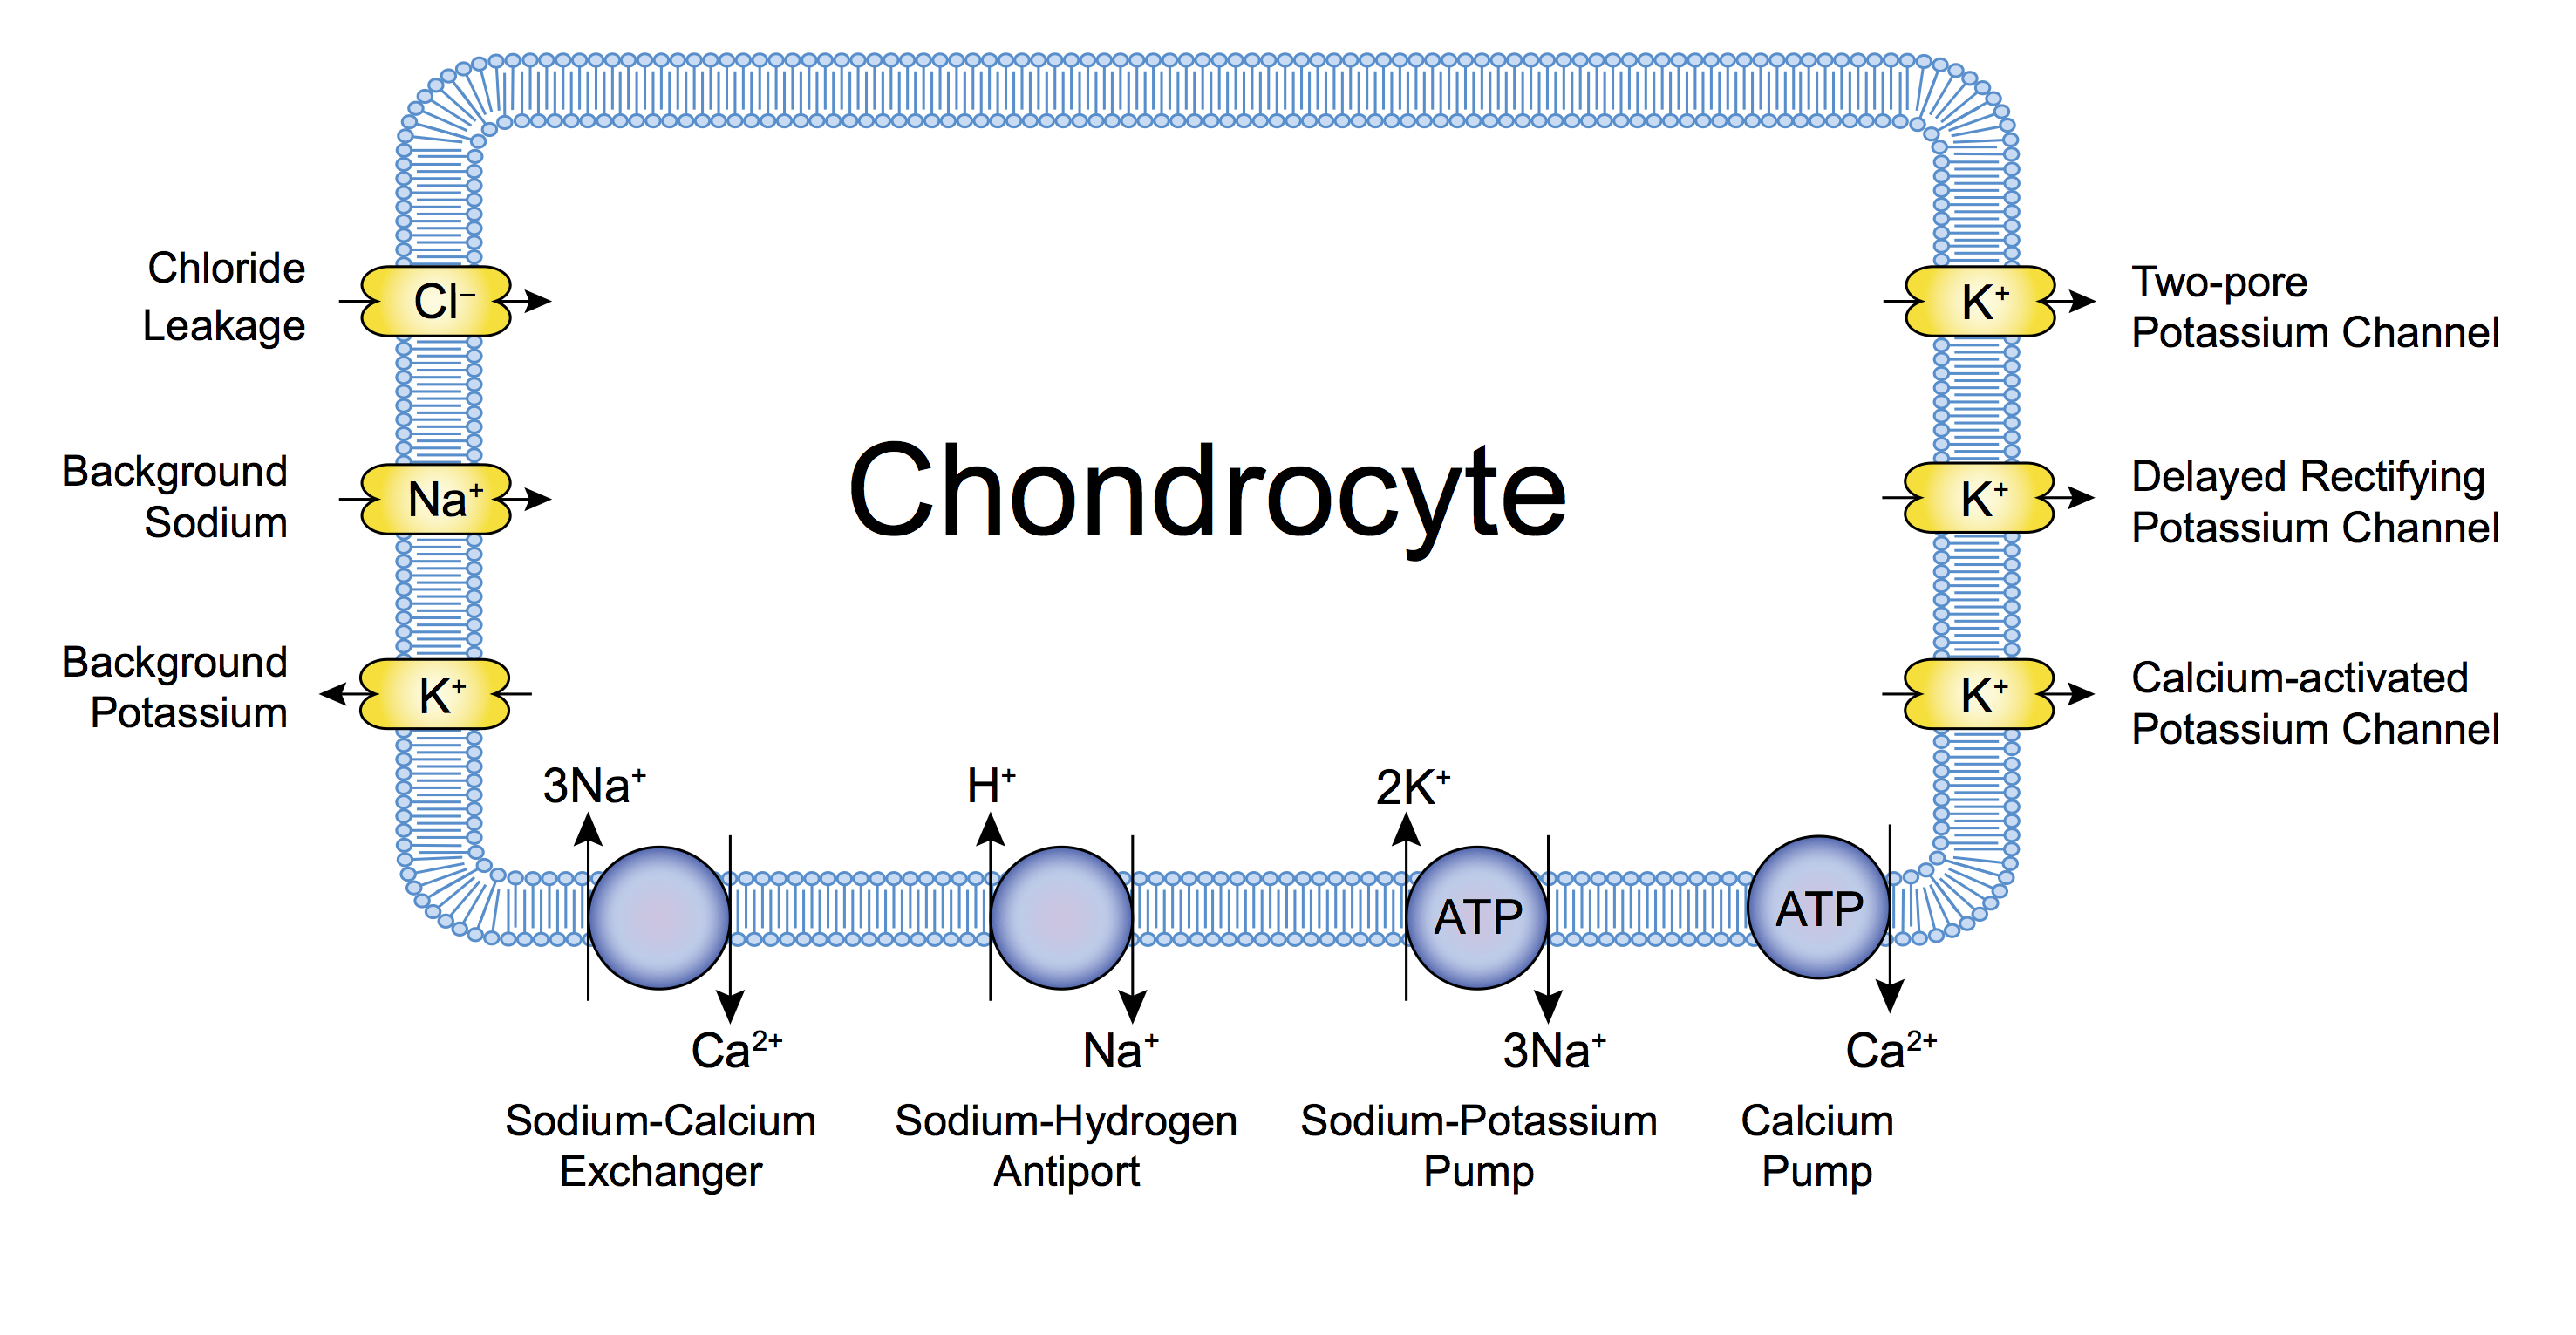 A schematic of the ion channels in a single chondrocyte.